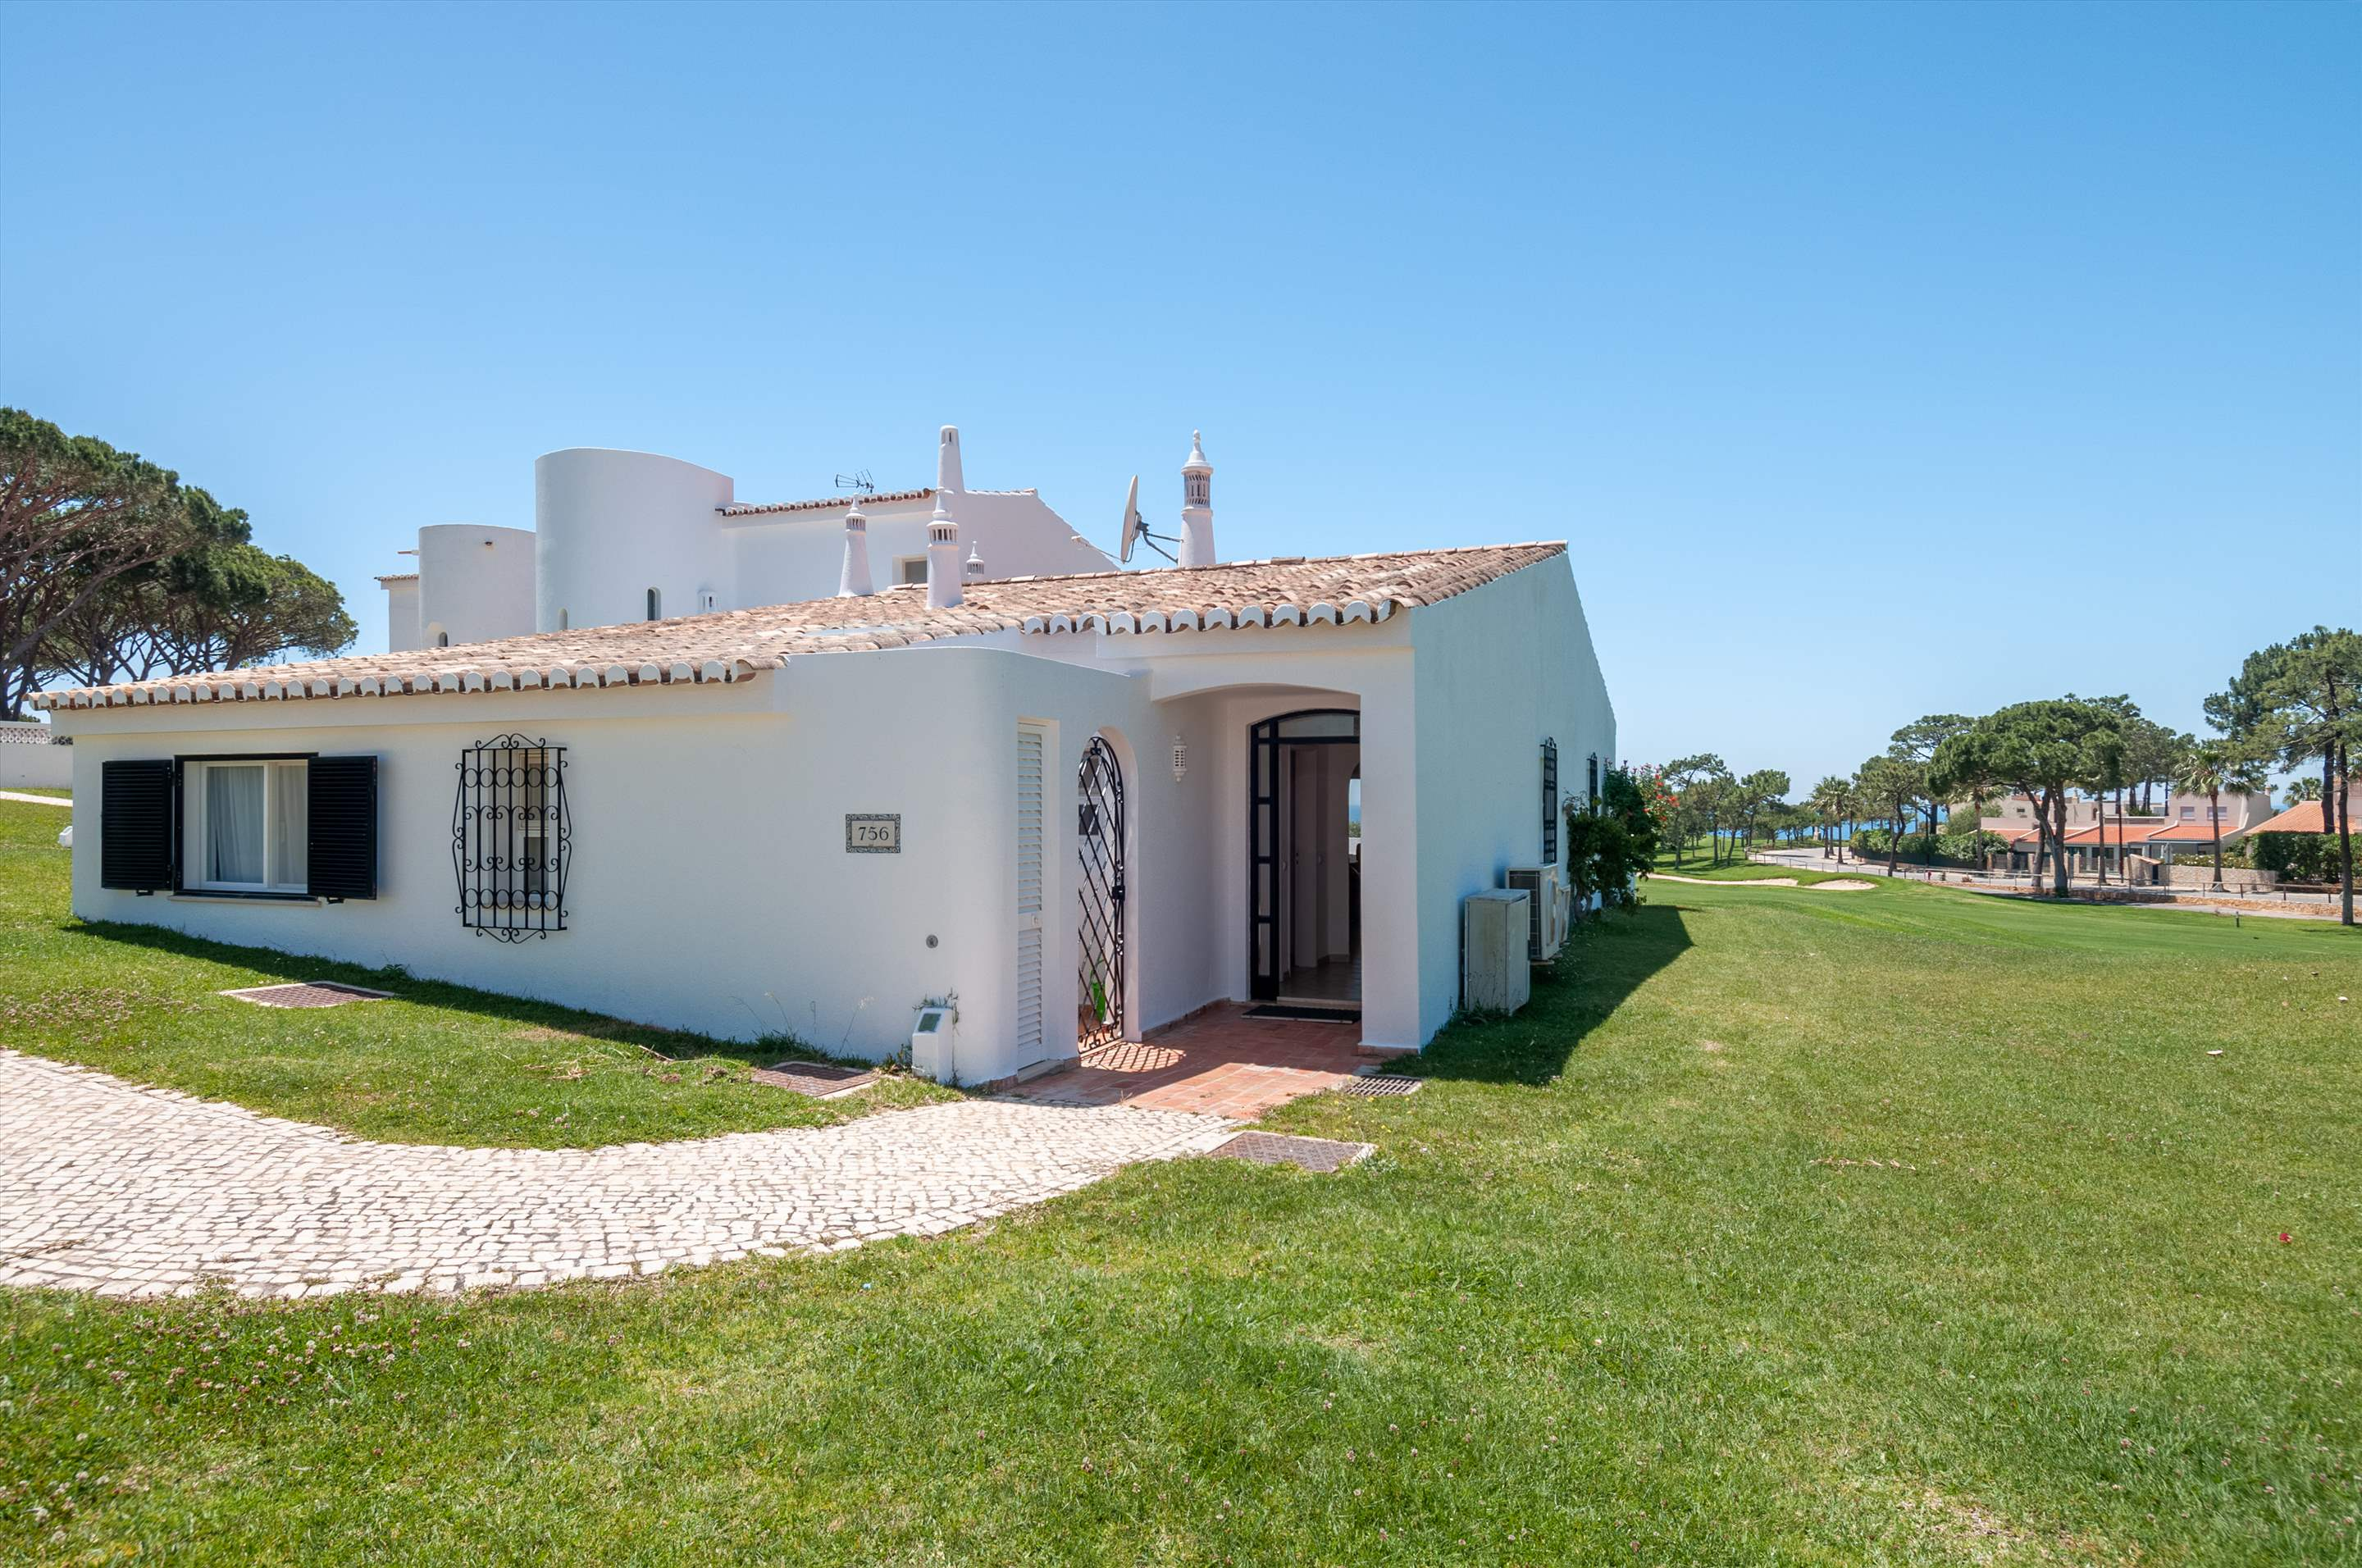 Villa Mimosa 6, 3 bedroom villa in Vale do Lobo, Algarve Photo #1